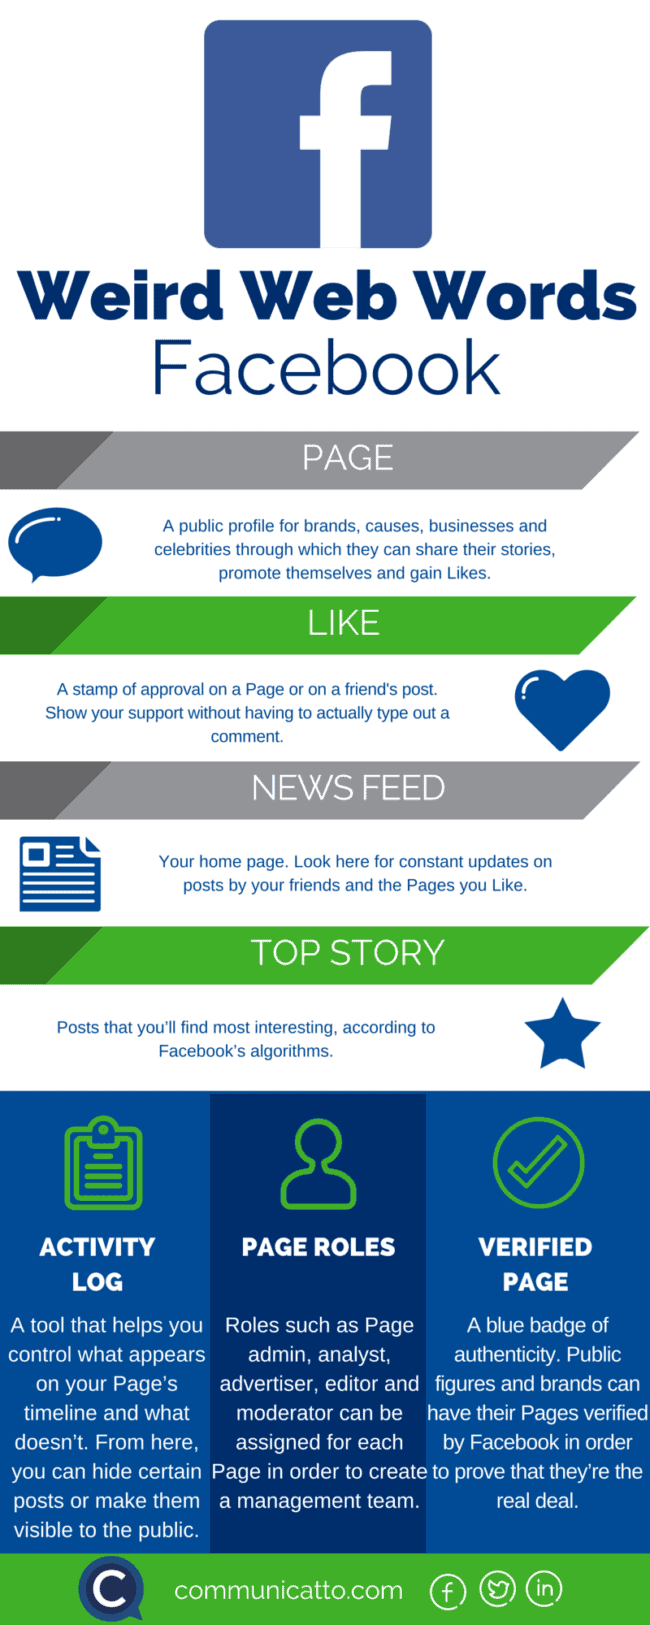 Get fluent in Facebook for business. Definitions infographic.